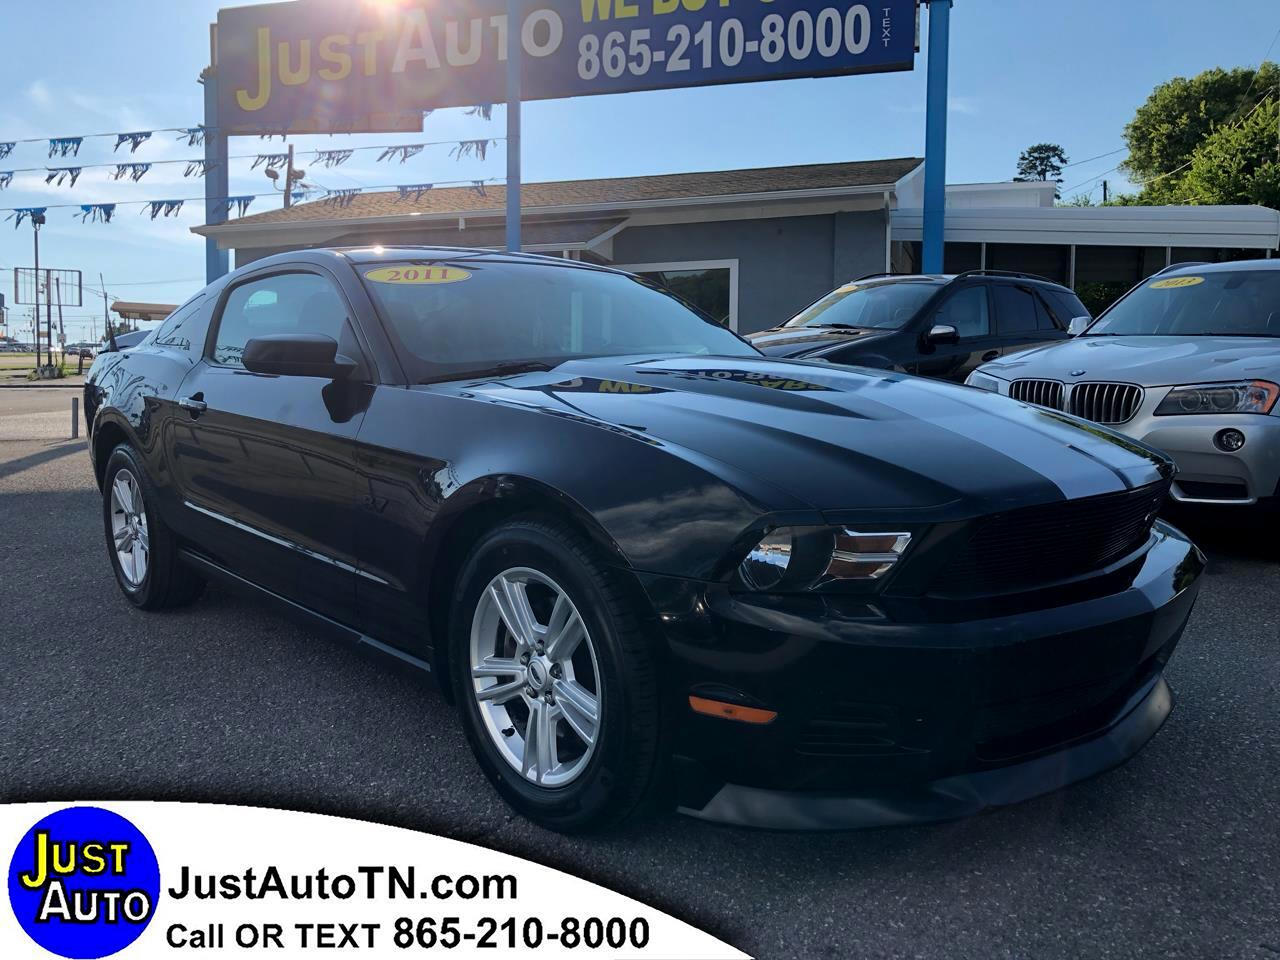 Ford Mustang 2dr Cpe V6 2011